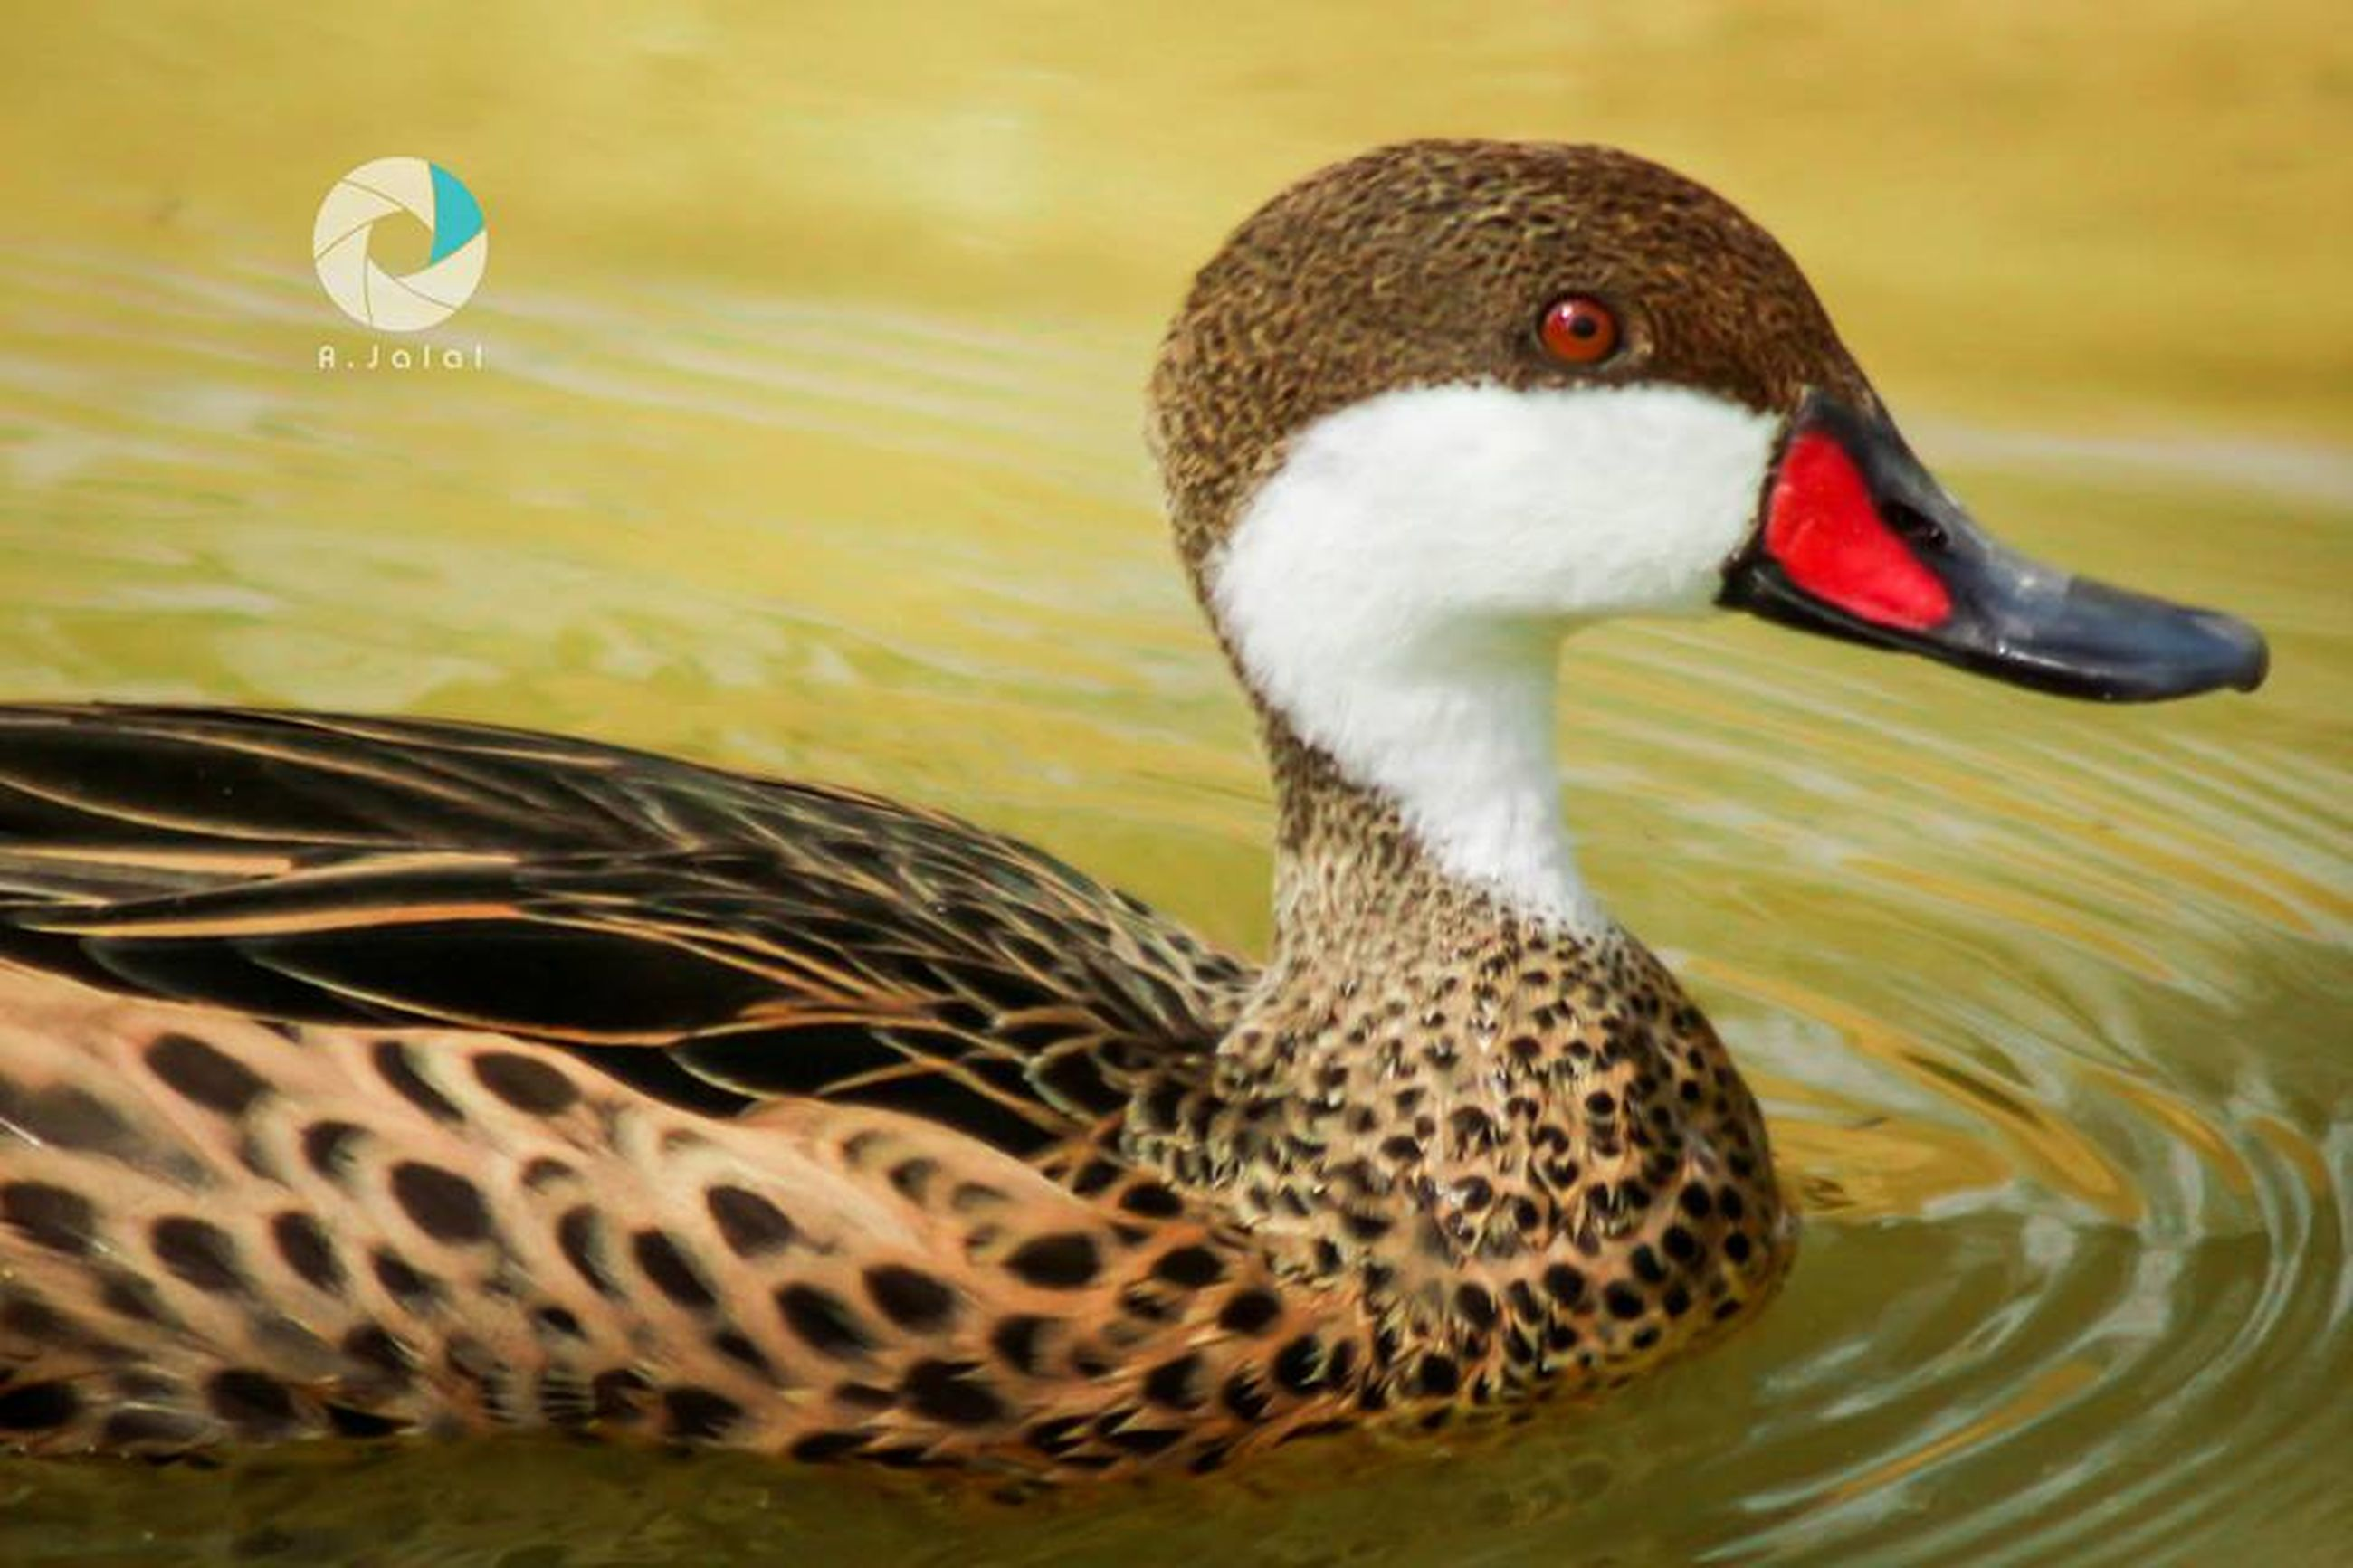 animal themes, animals in the wild, bird, wildlife, one animal, beak, water, lake, duck, close-up, swimming, focus on foreground, nature, side view, two animals, animal head, water bird, outdoors, no people